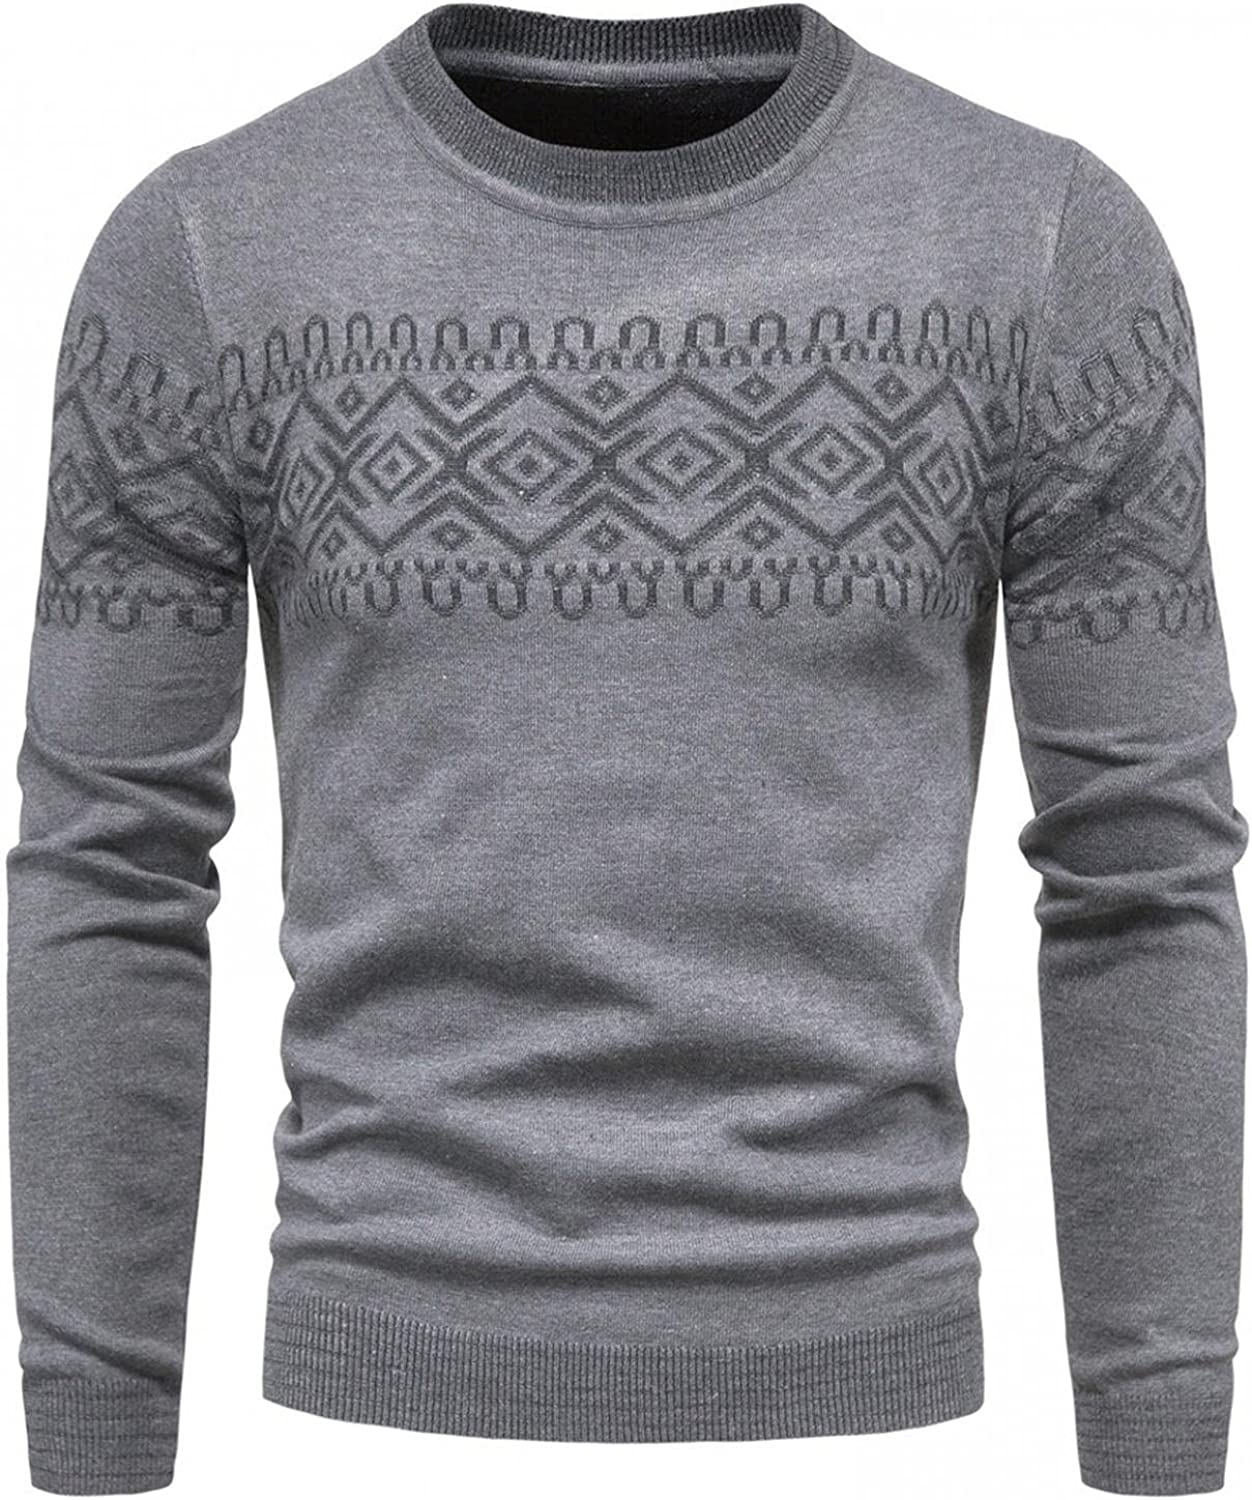 FUNEY Men's Muscle Fited Soft Cotton Cable Stitch Crewneck Sweater Color Block Long Sleeve Vintage Ugly Christmas Sweaters